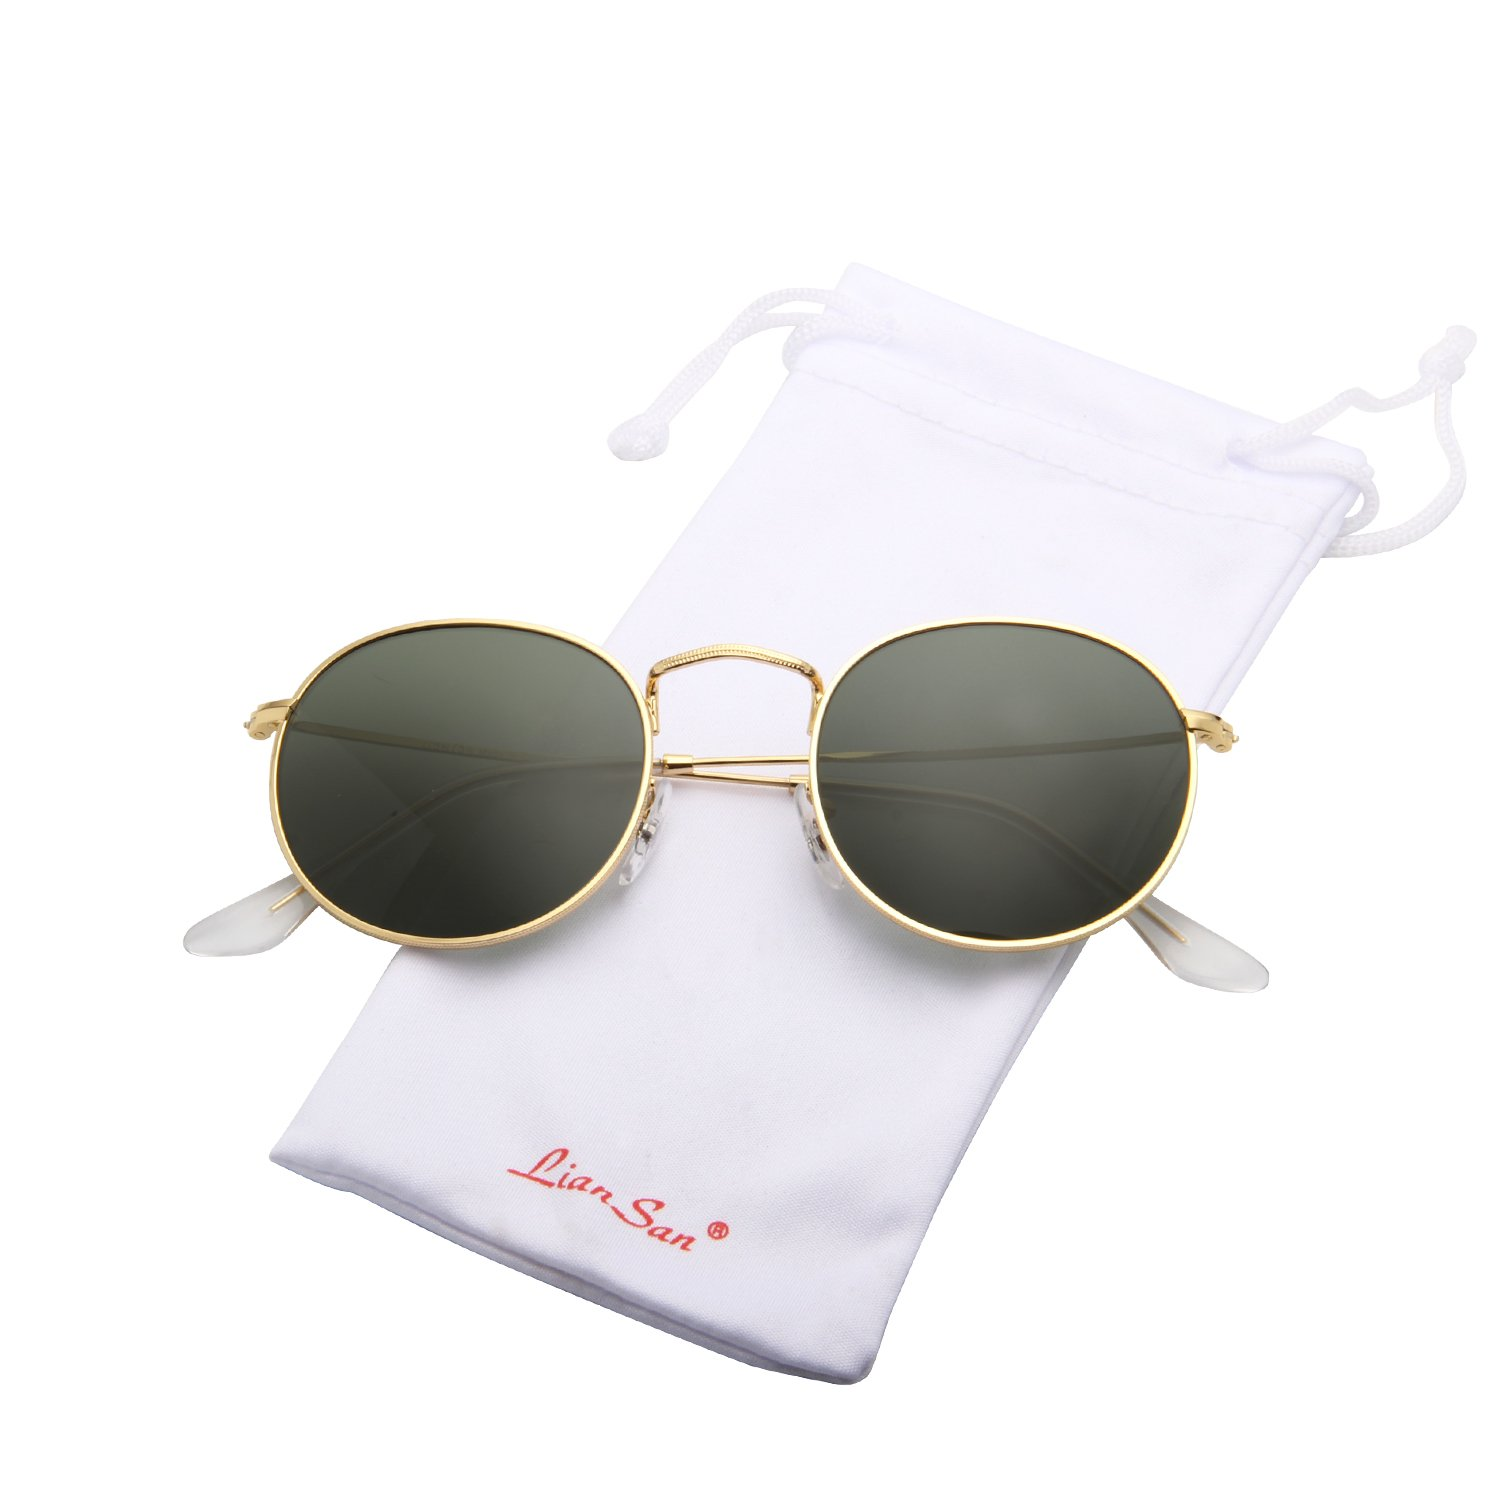 LianSan Classic Metal Frame Round Circle Mirrored Sunglasses for Men and Women Glasses 3447 Green Glass Lenses